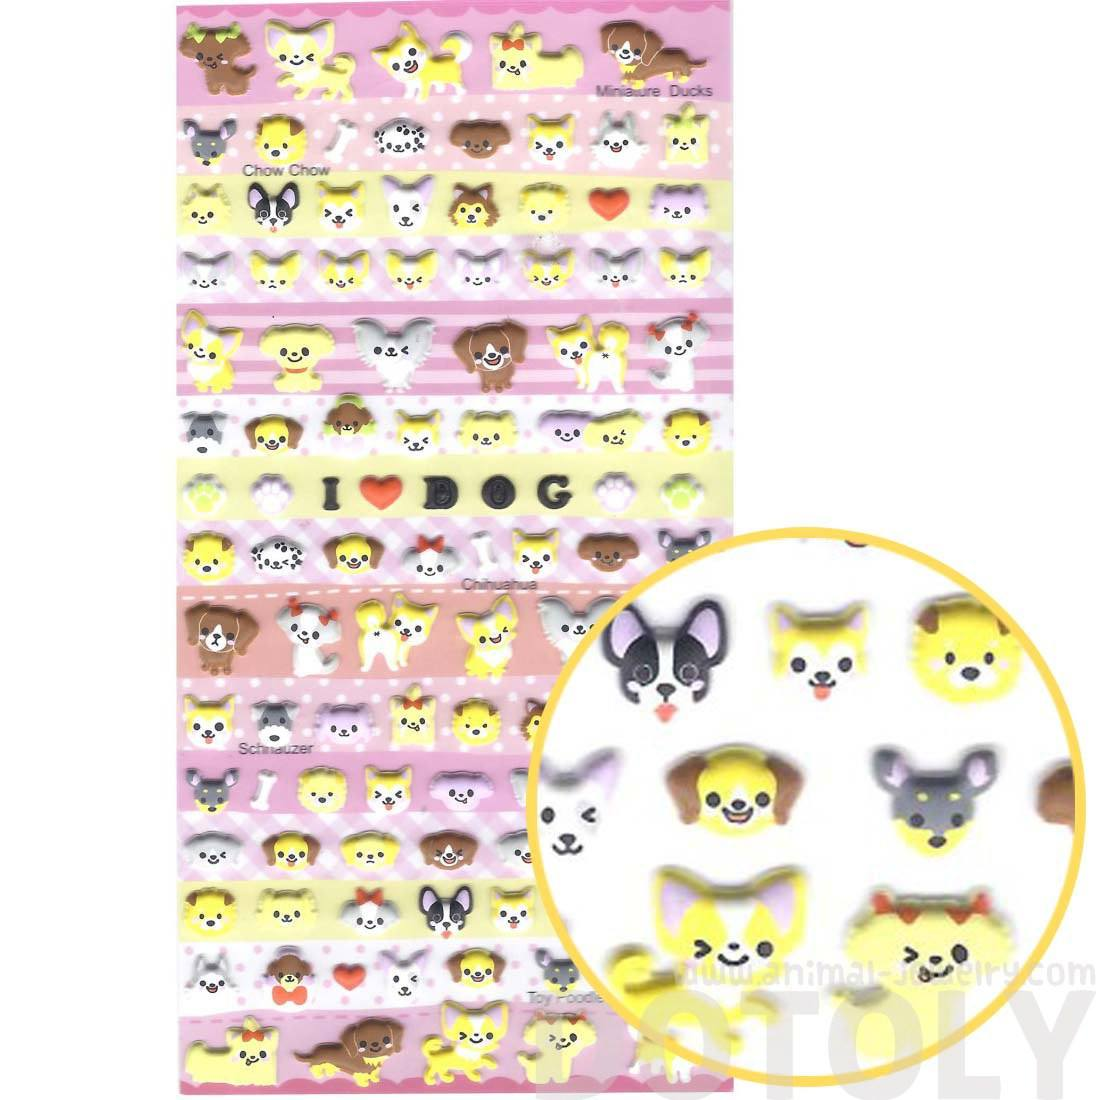 Small Puppy Dog Face Shaped Animal Puffy Scrapbook Sticker Seals